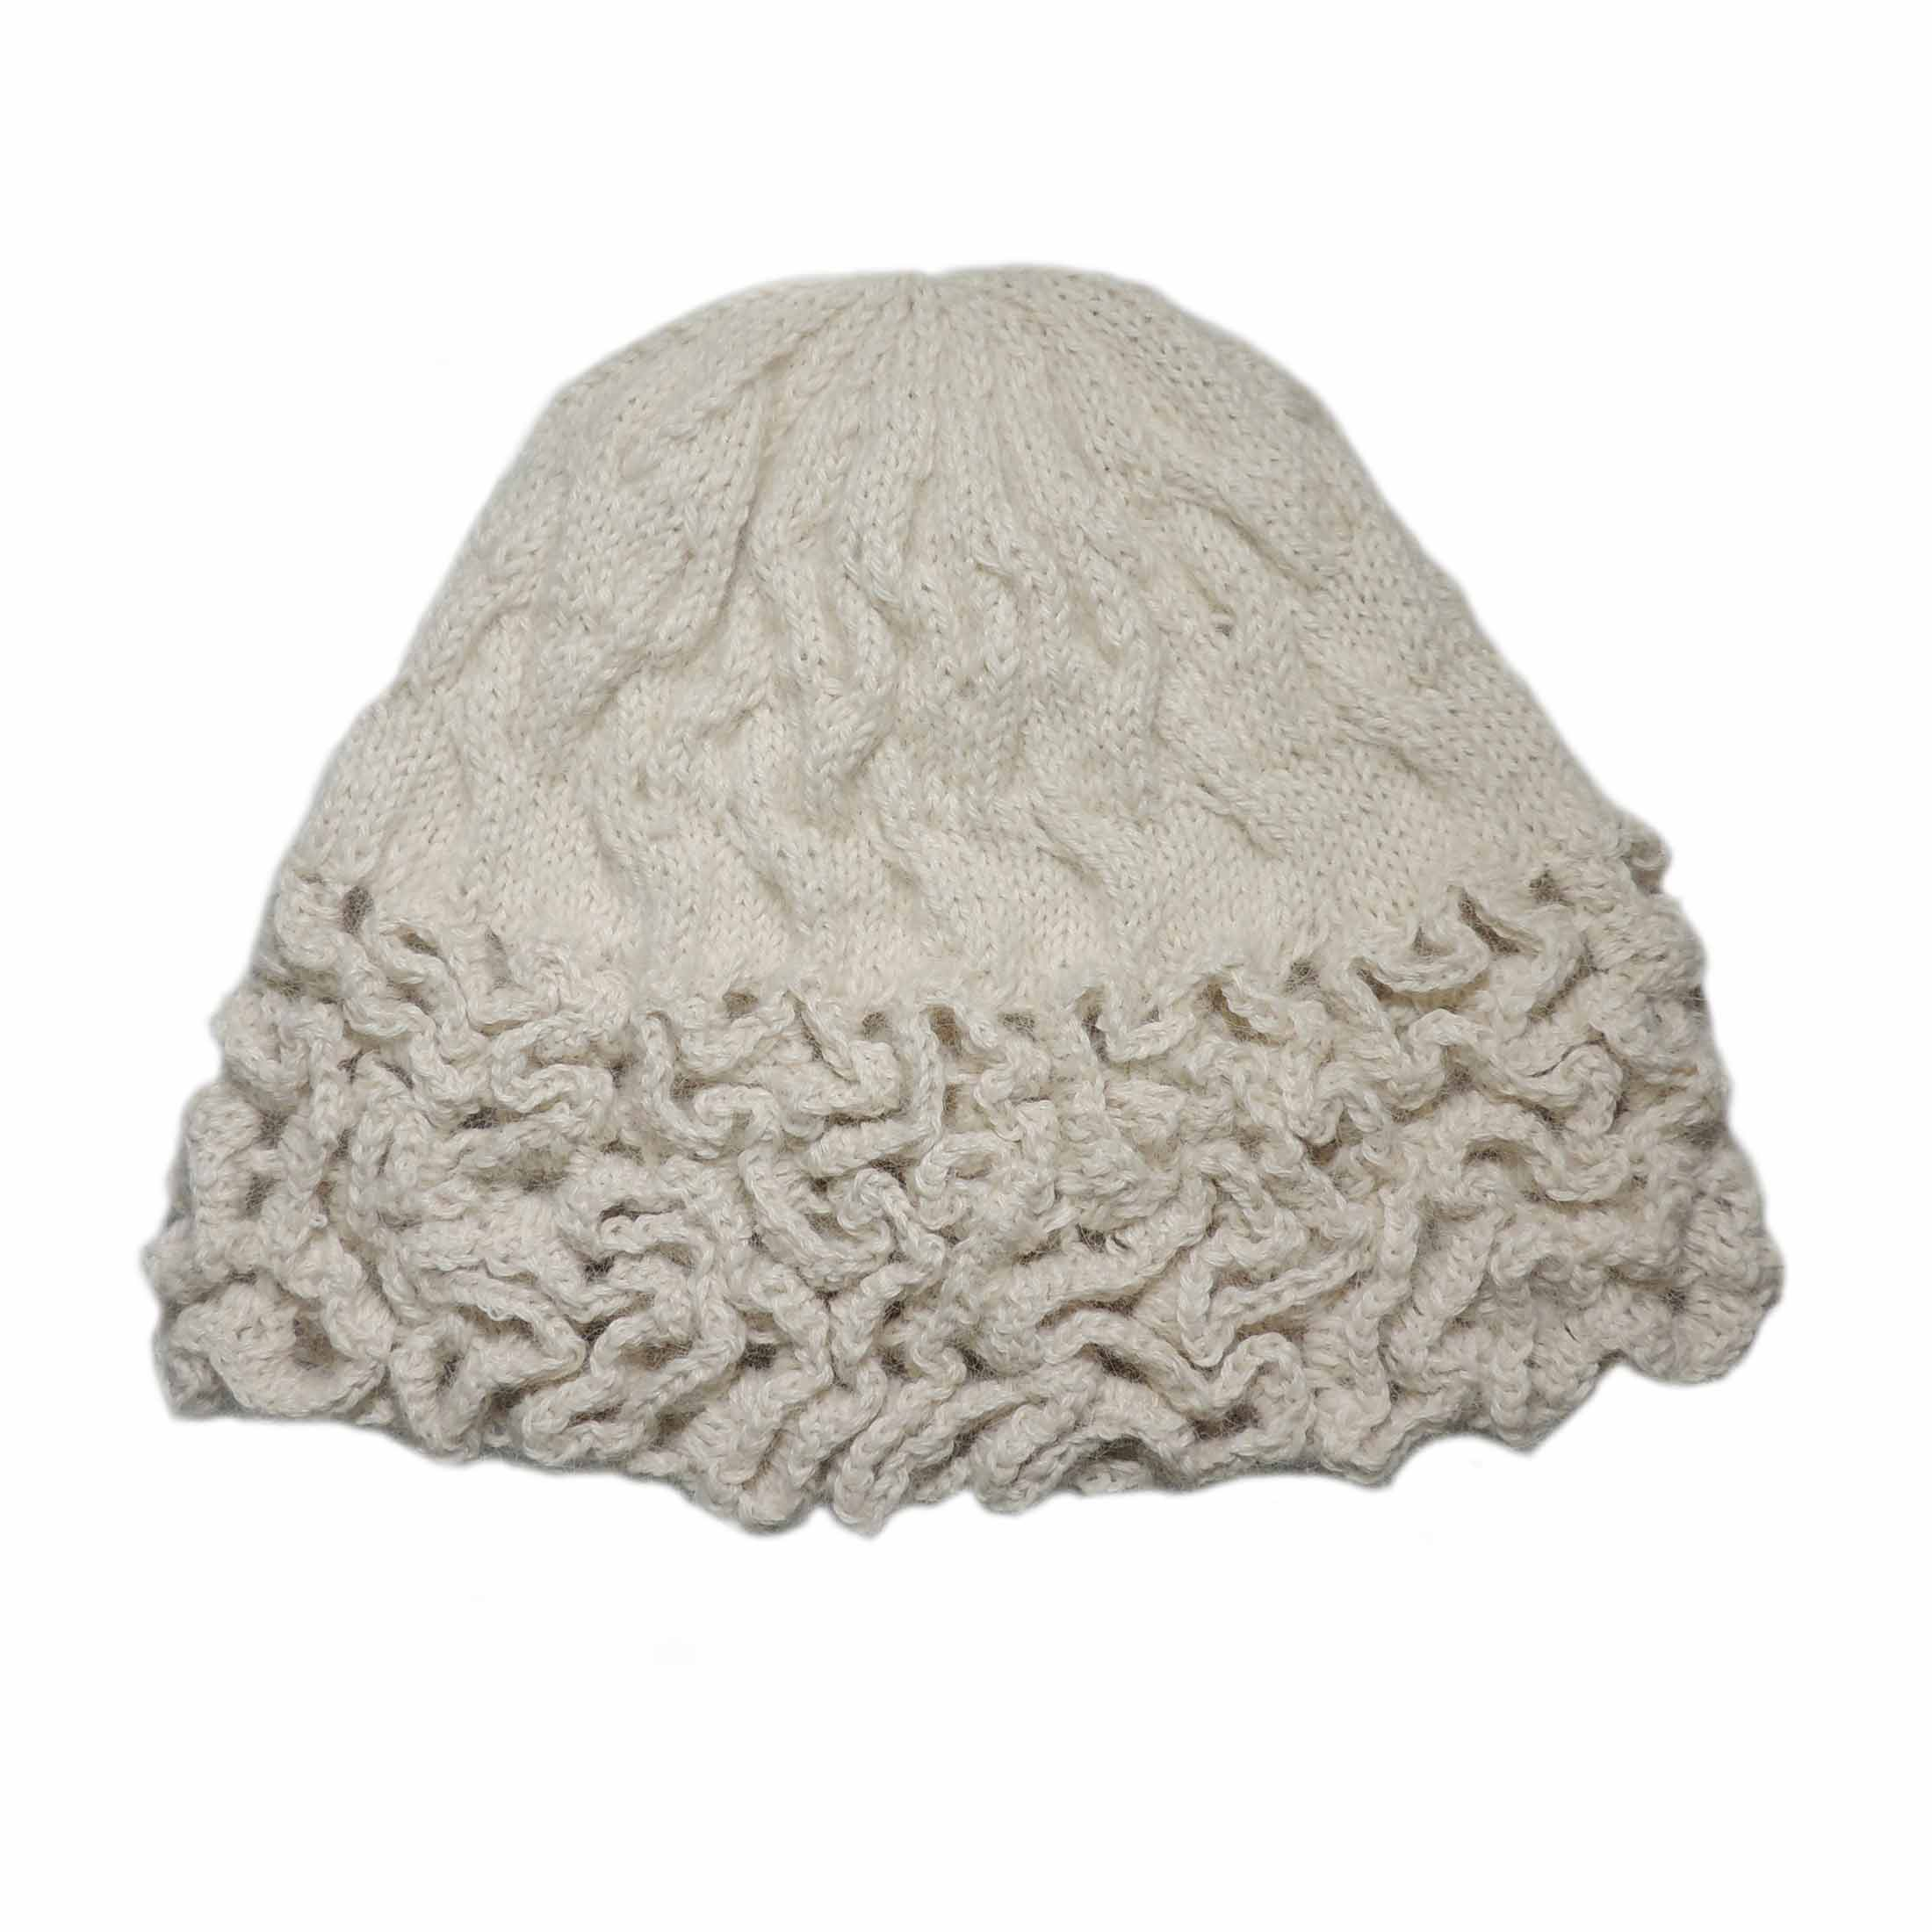 Popsfl Knitting Peru wholesale producerHand knitted beanie - hat solid color with relief pattern in 100% baby alpaca